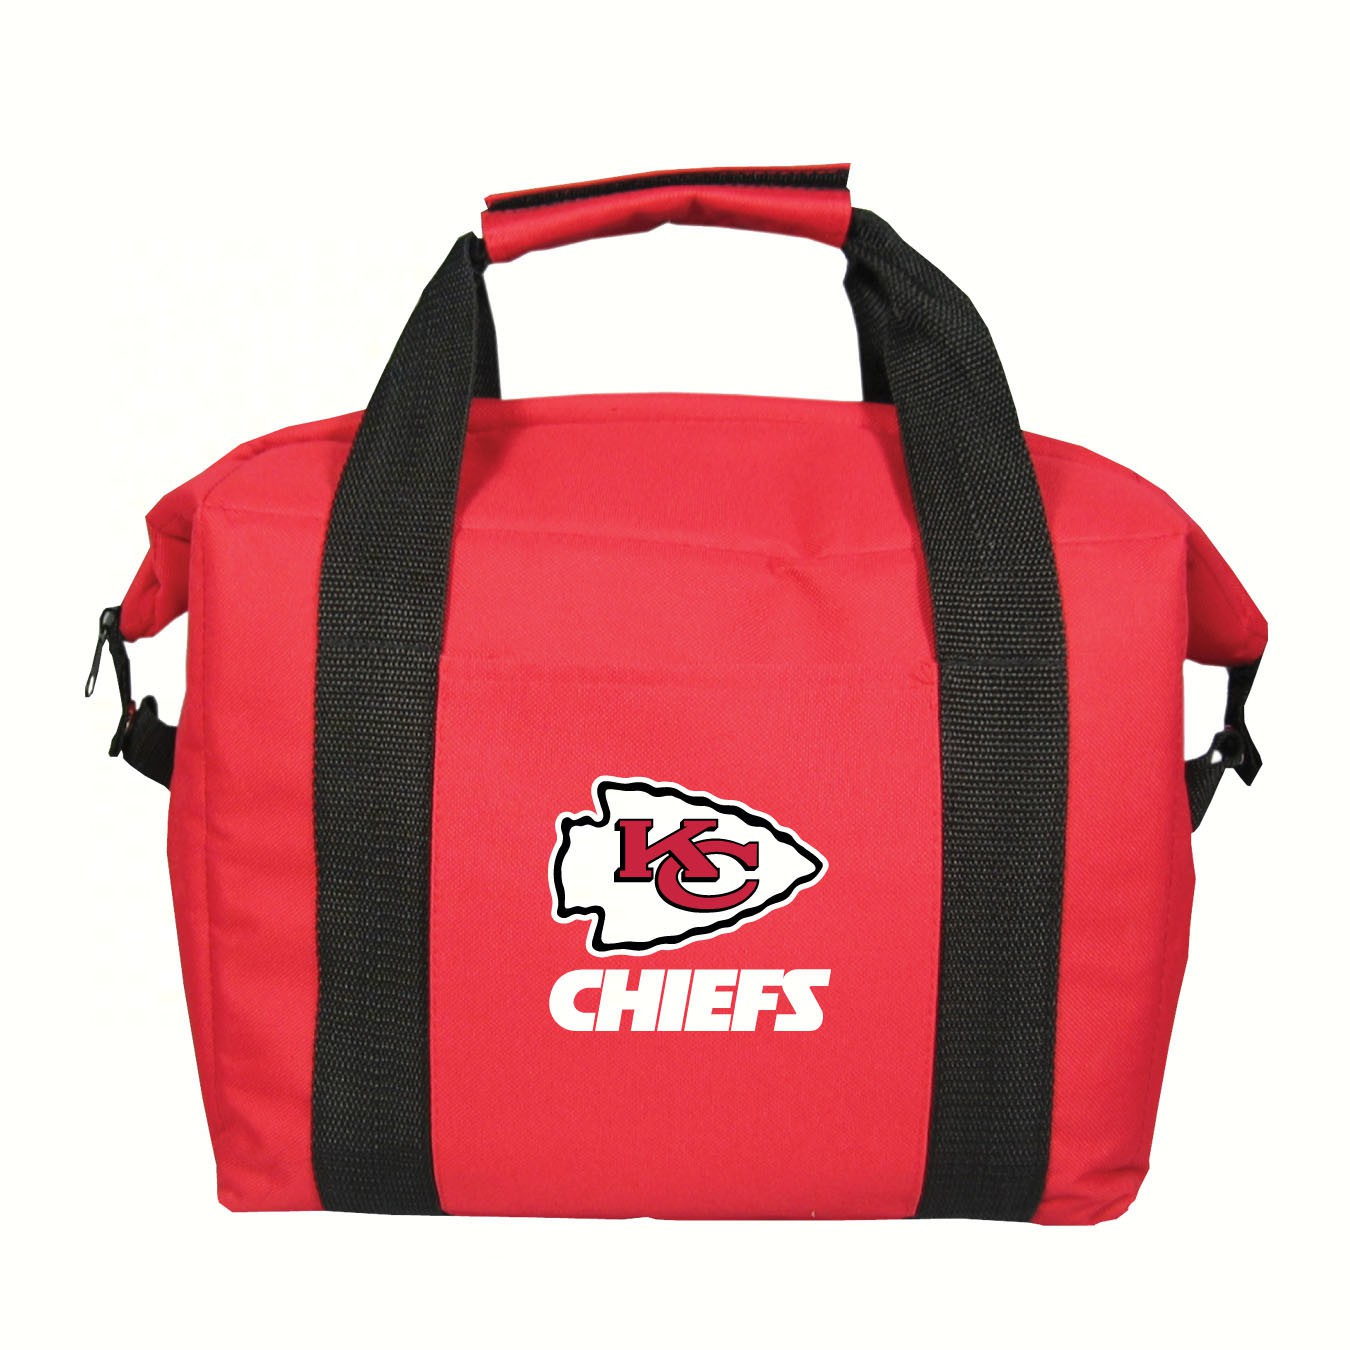 Kooler Bag - Kansas City Chiefs (Hold a 12 pack)